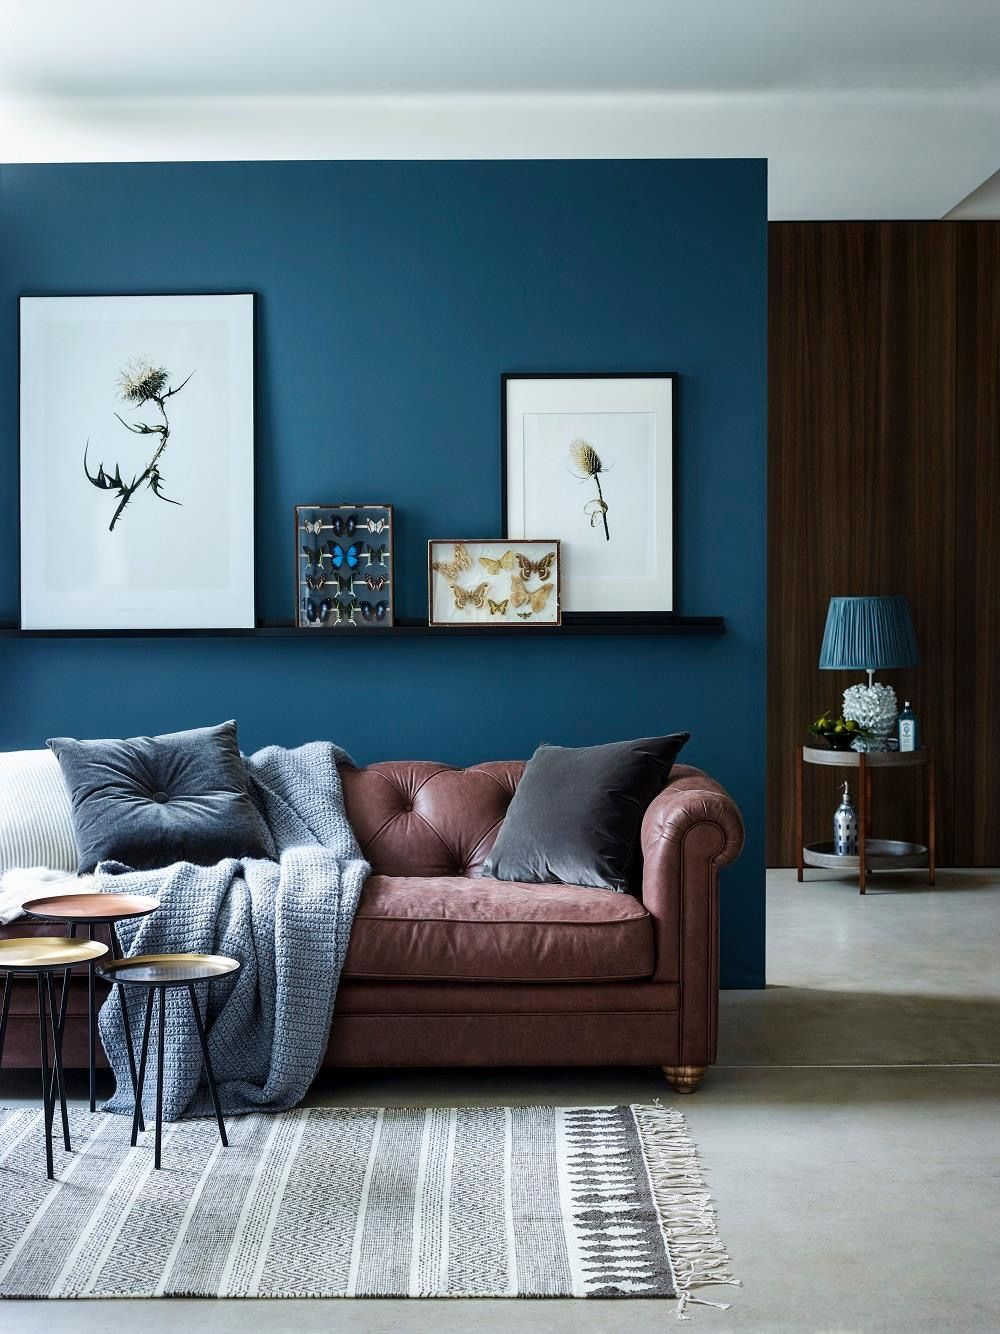 Relaxing living room in blue-green and brown